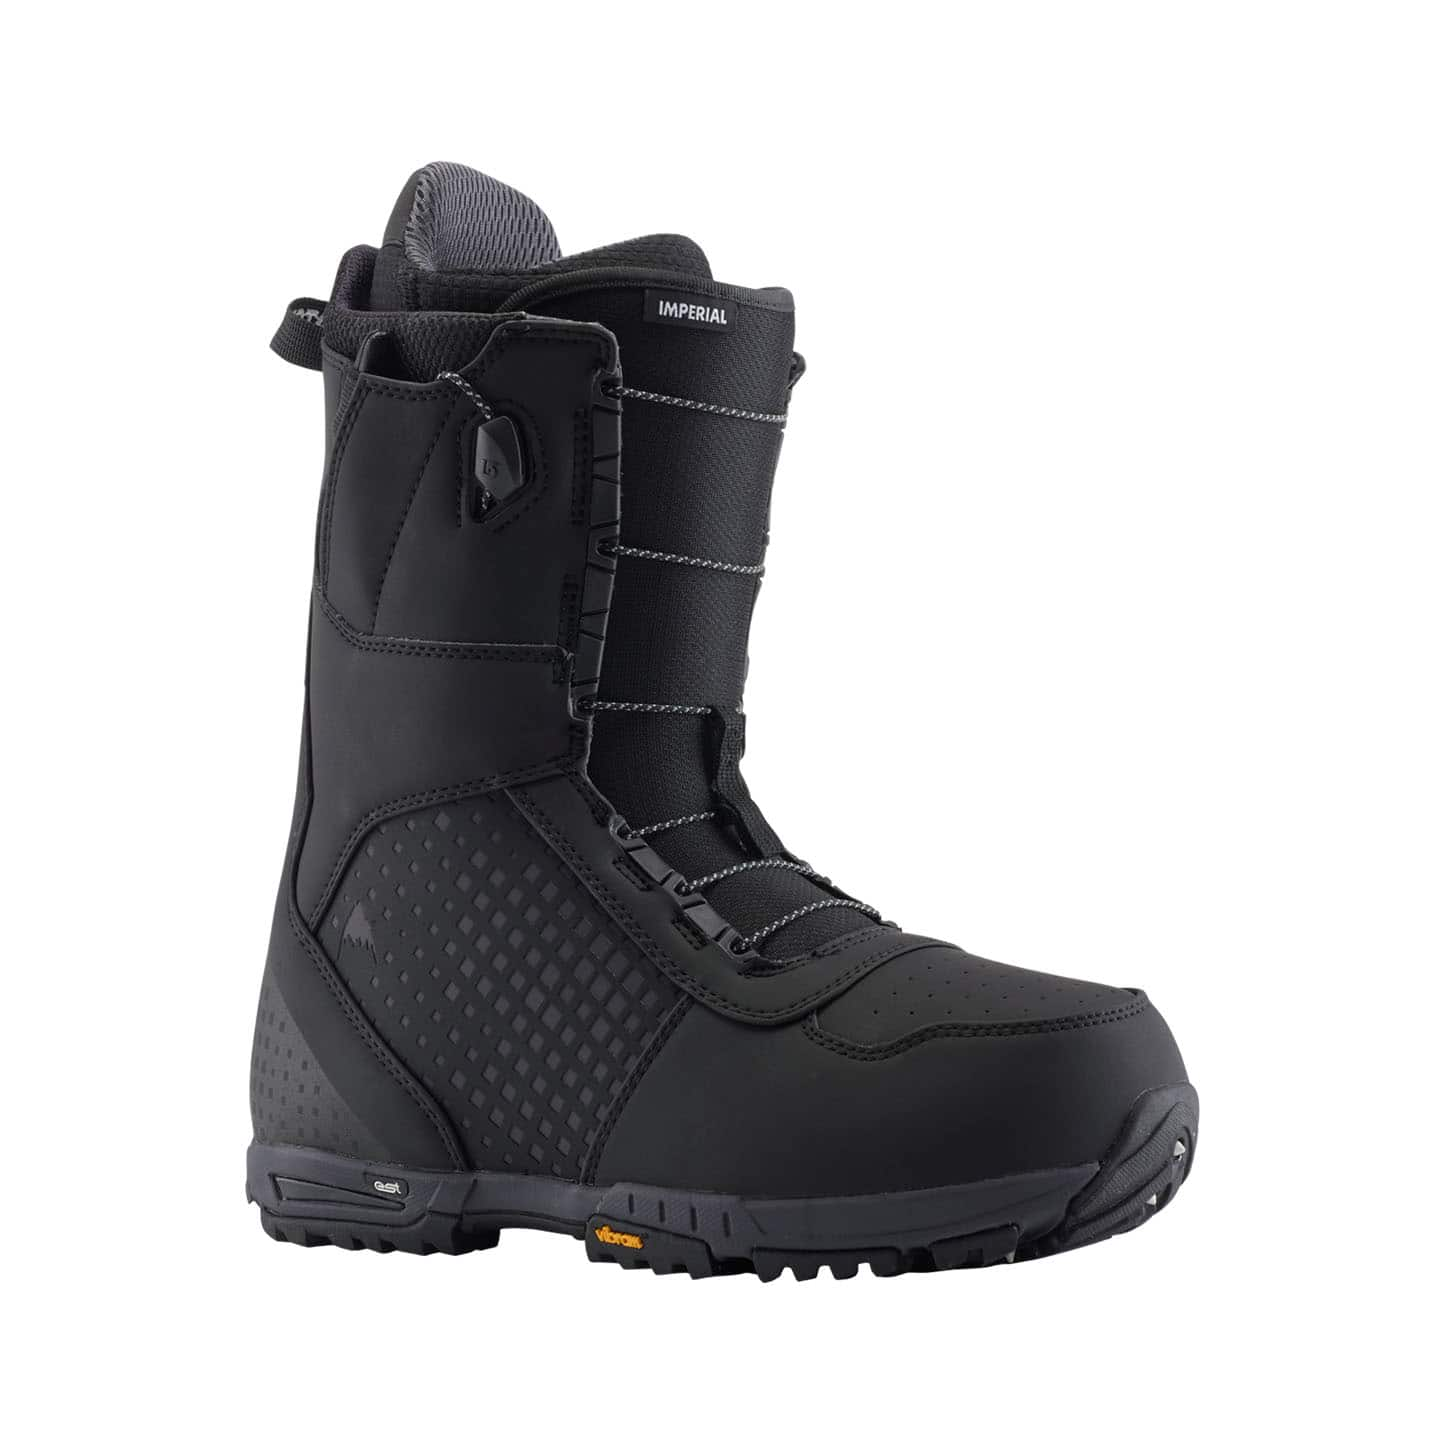 De Homme Snowboard Burton Imperial Boots ymNv8wP0On